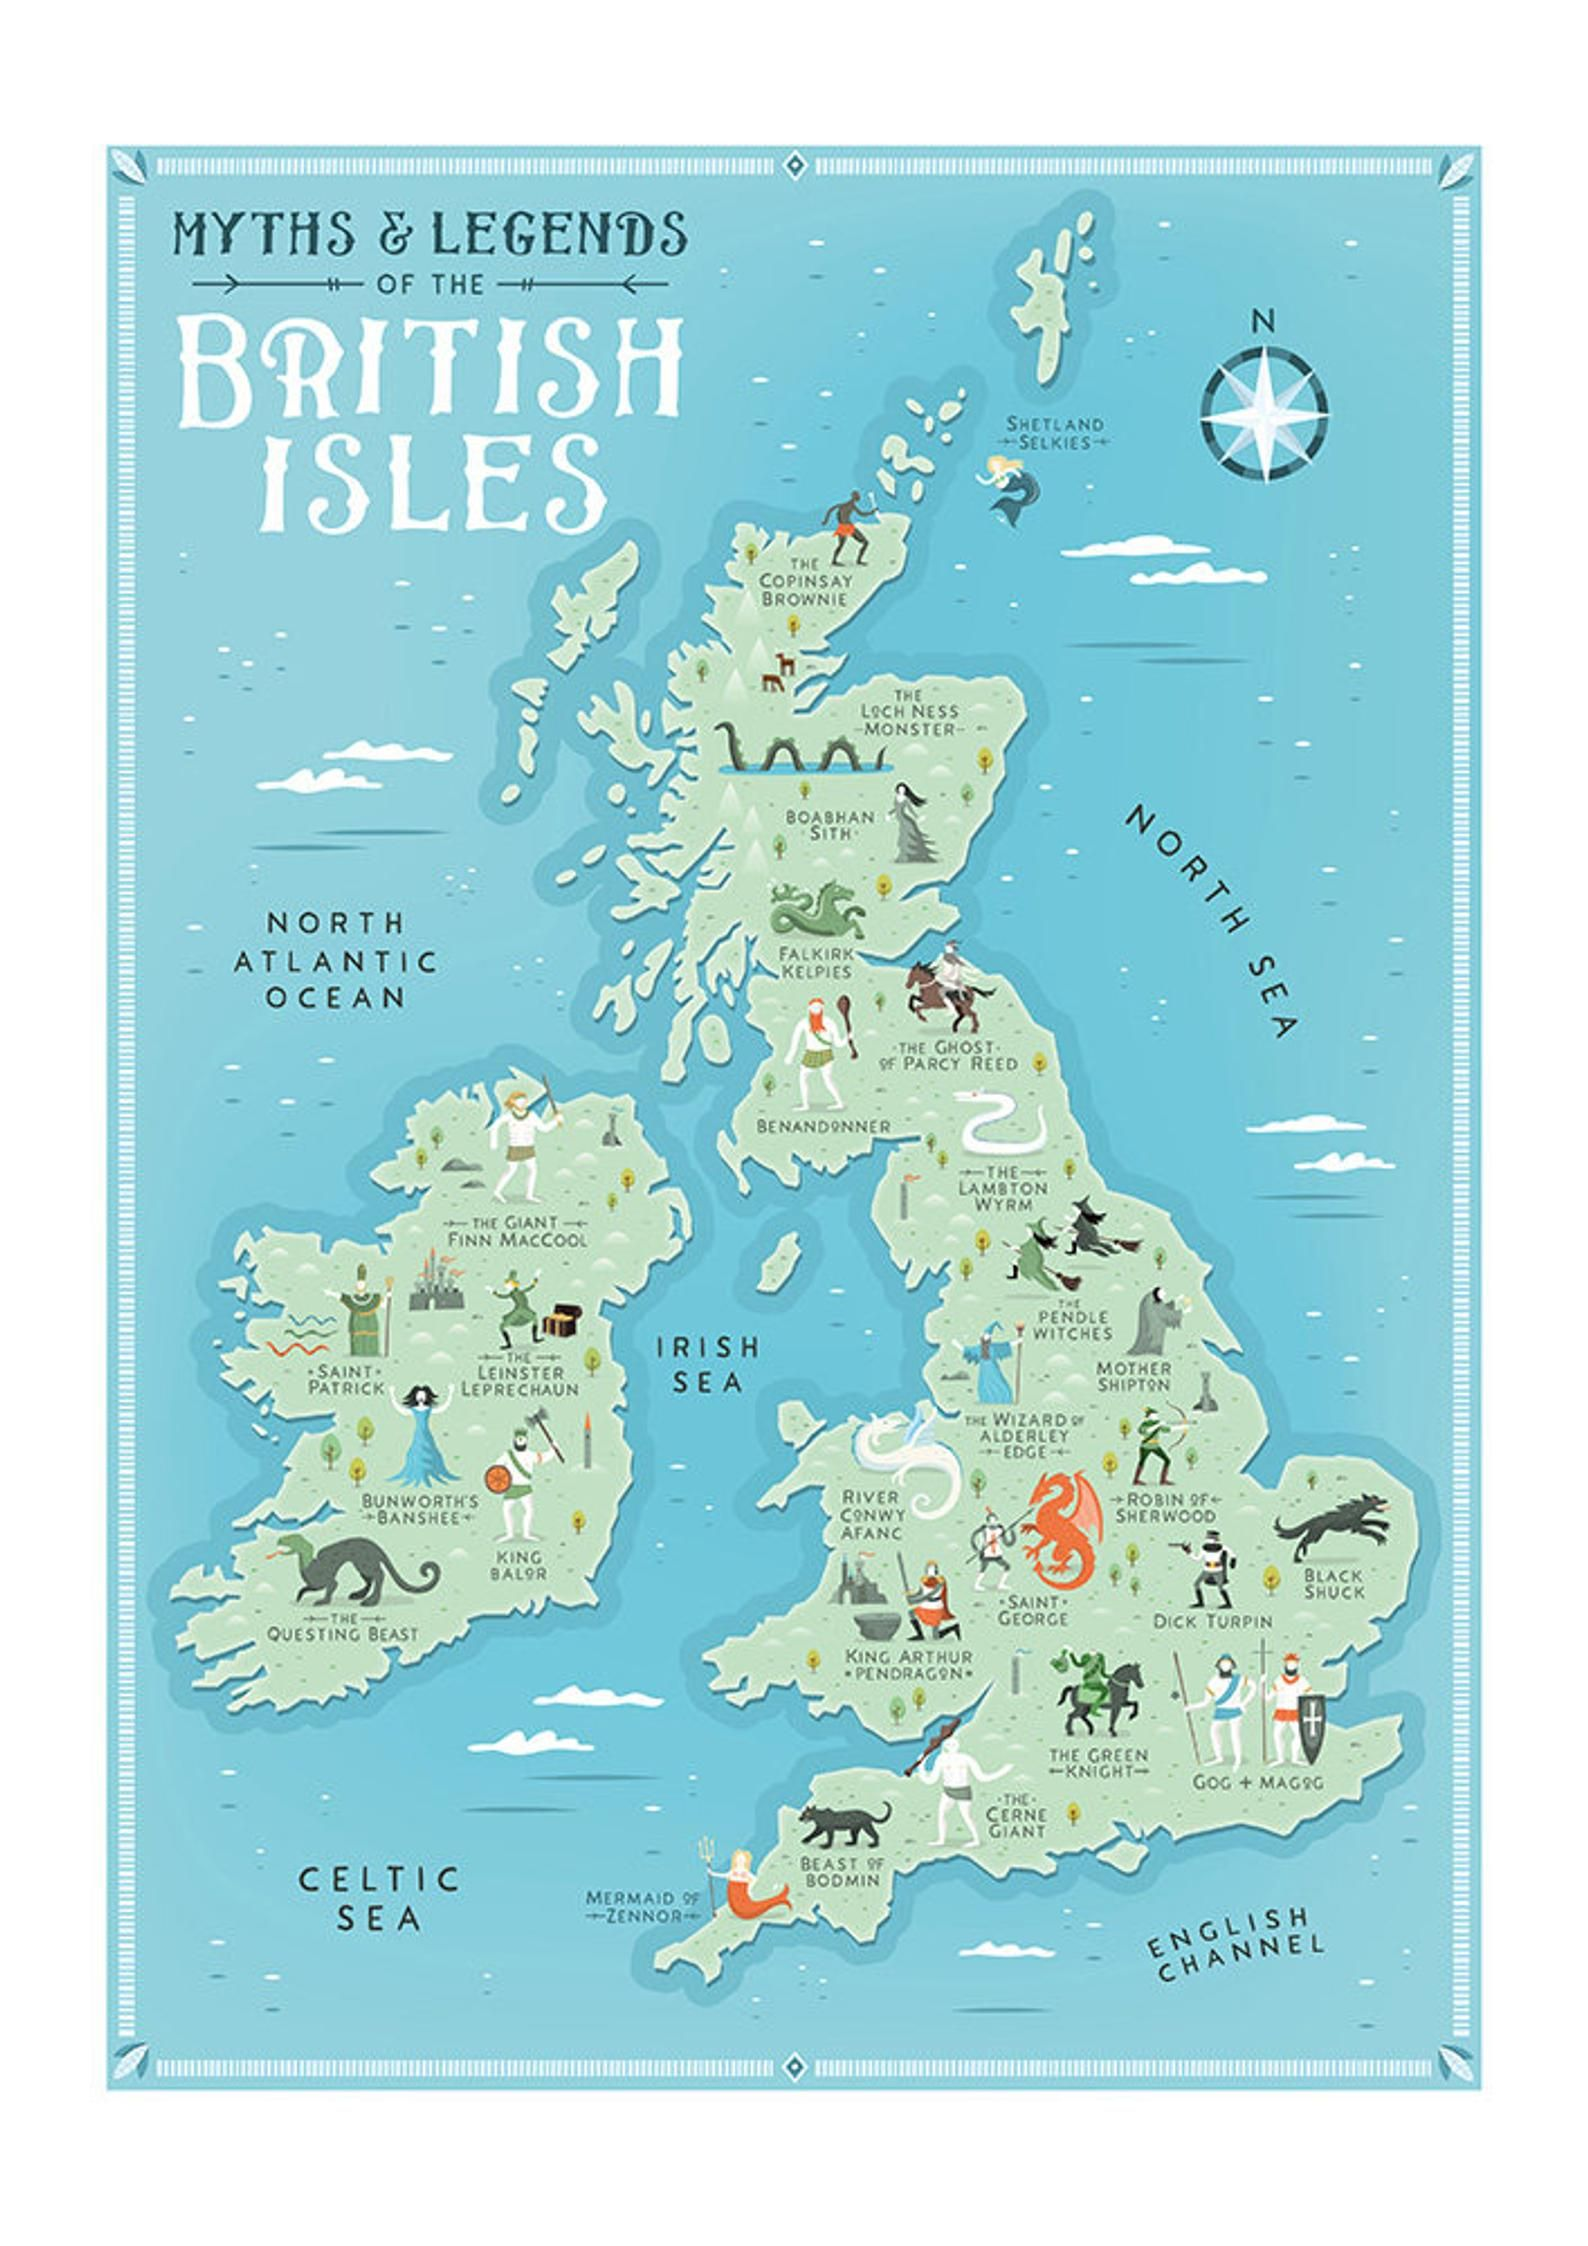 British Isles Map Myths And Legends Of The British Isles Etsy British Isles Map Map Of Britain Illustrated Map